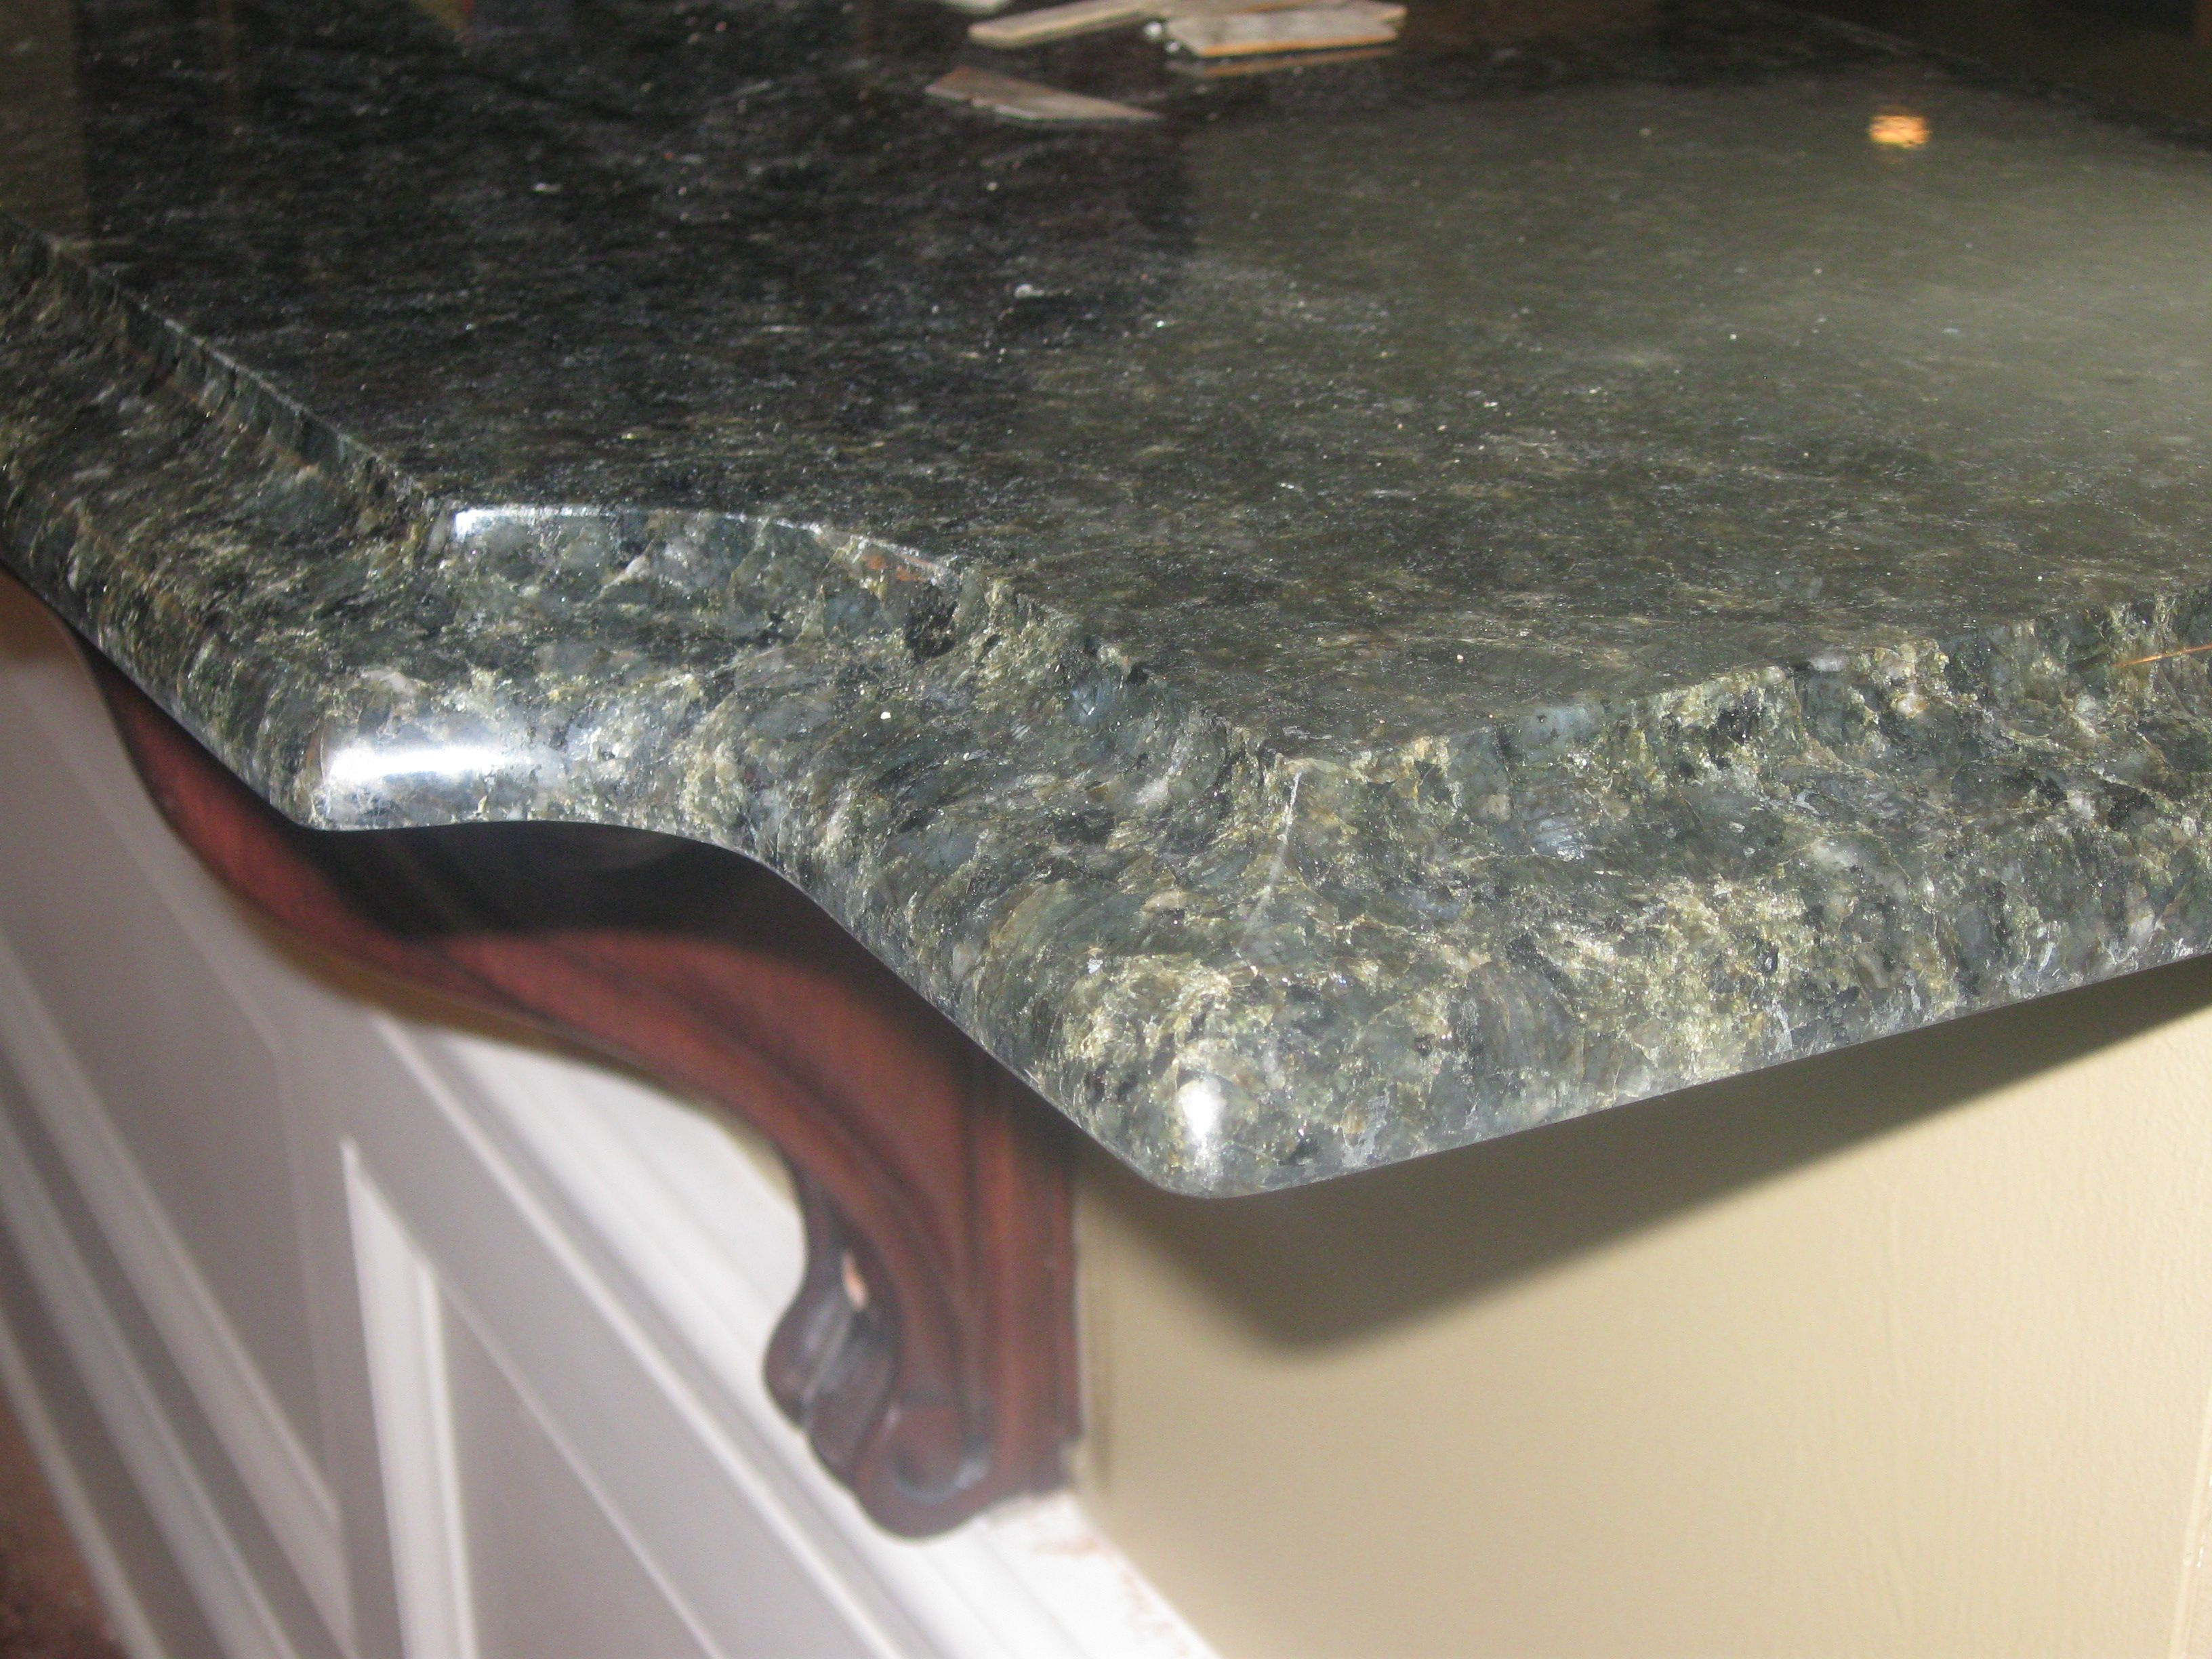 Superior Check Out The Beautiful Ogee Edge On The Granite Countertops From Vallaru0027s  Tile And Marble In